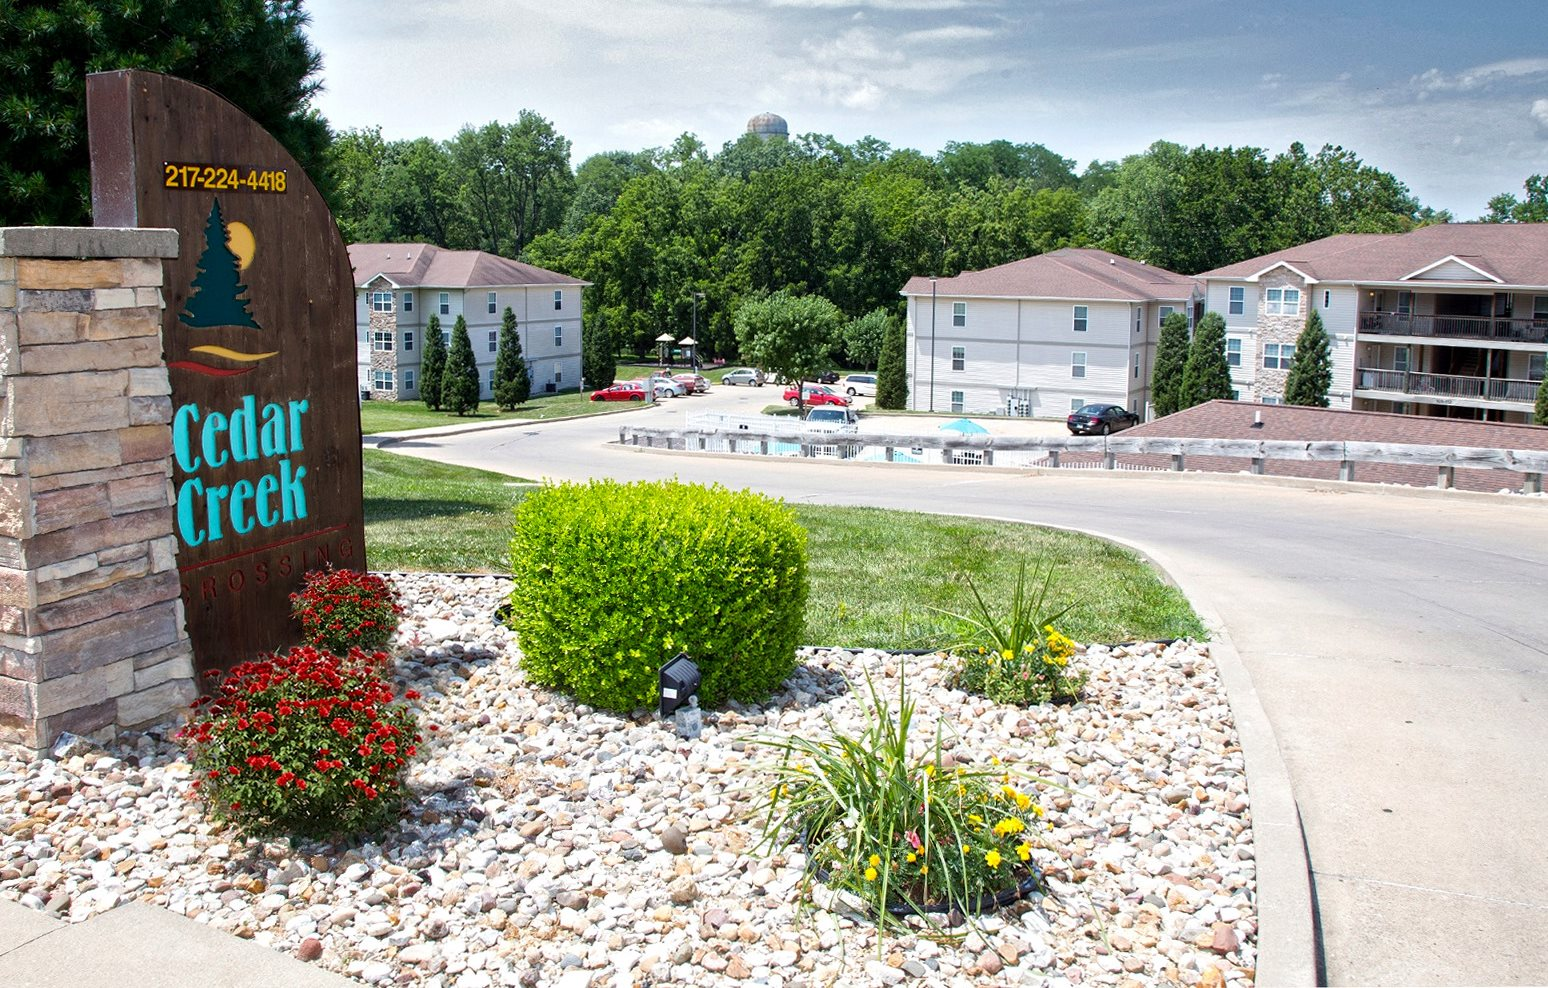 Cedar creek crossing apartments in quincy il Public swimming pools in quincy il